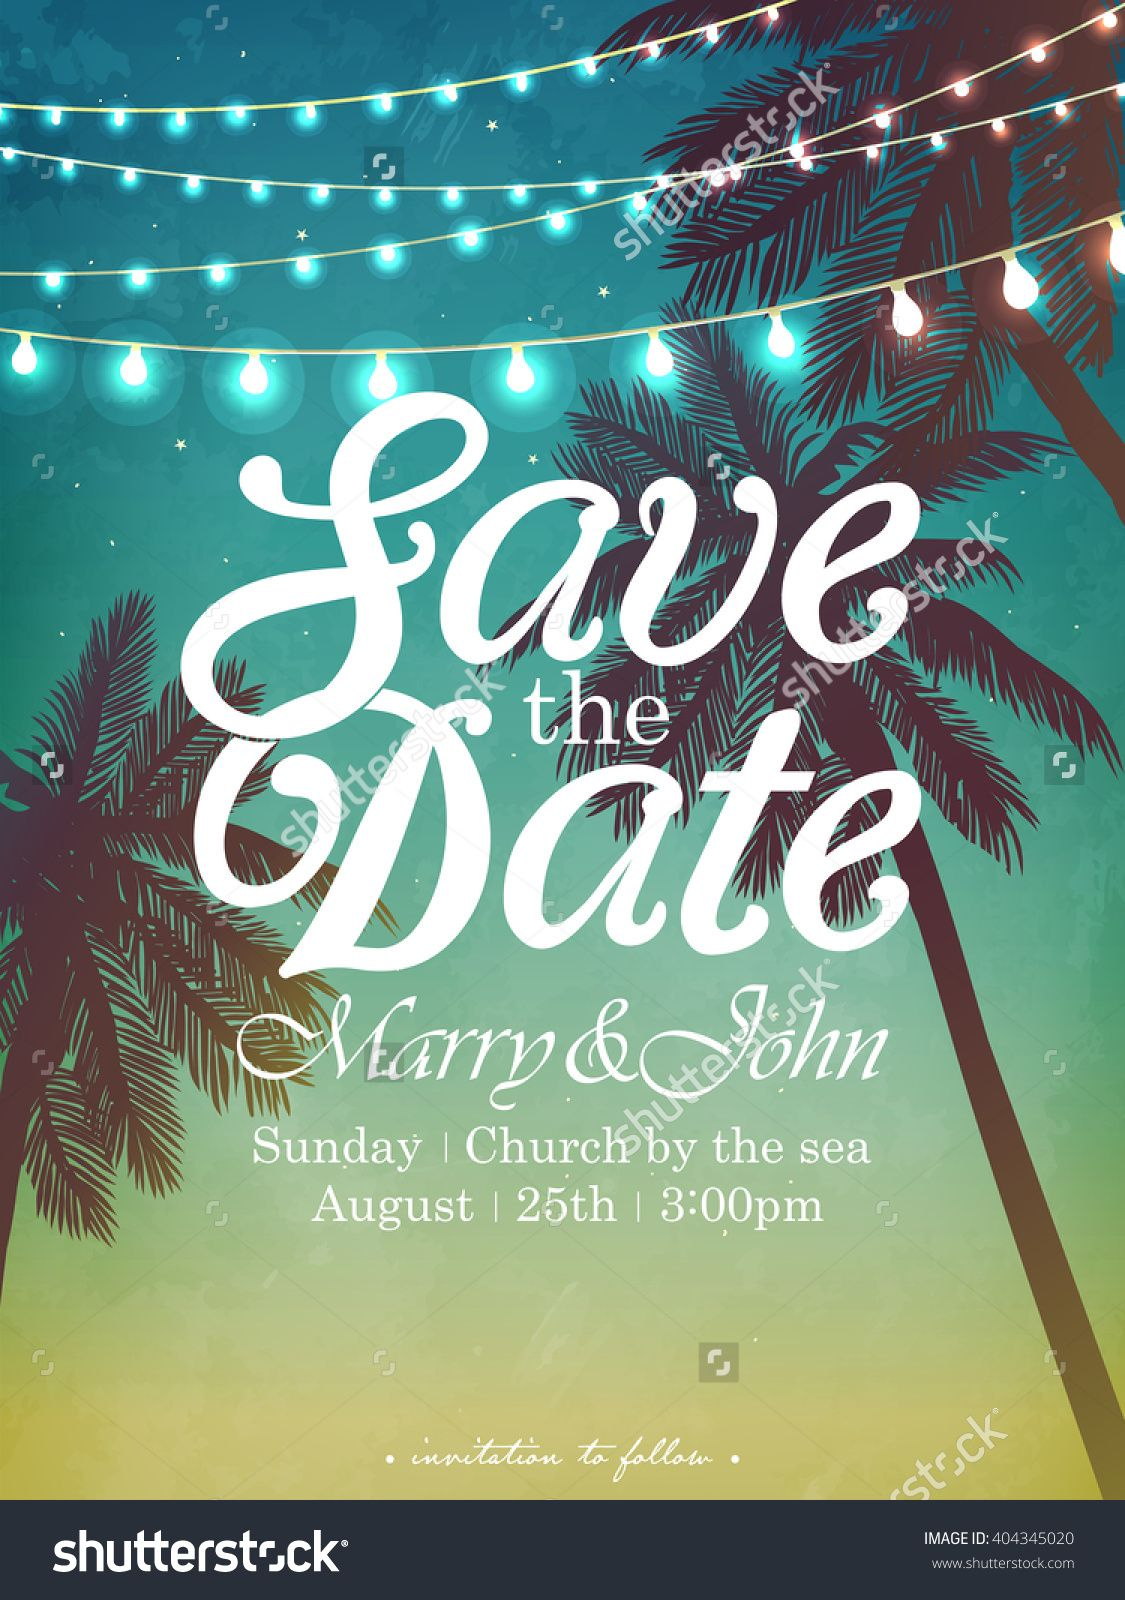 party invitations after wedding%0A Hanging decorative holiday lights for a beach party  Inspiration card for  wedding  date  birthday  Beach party invitation  buy this stock vector on